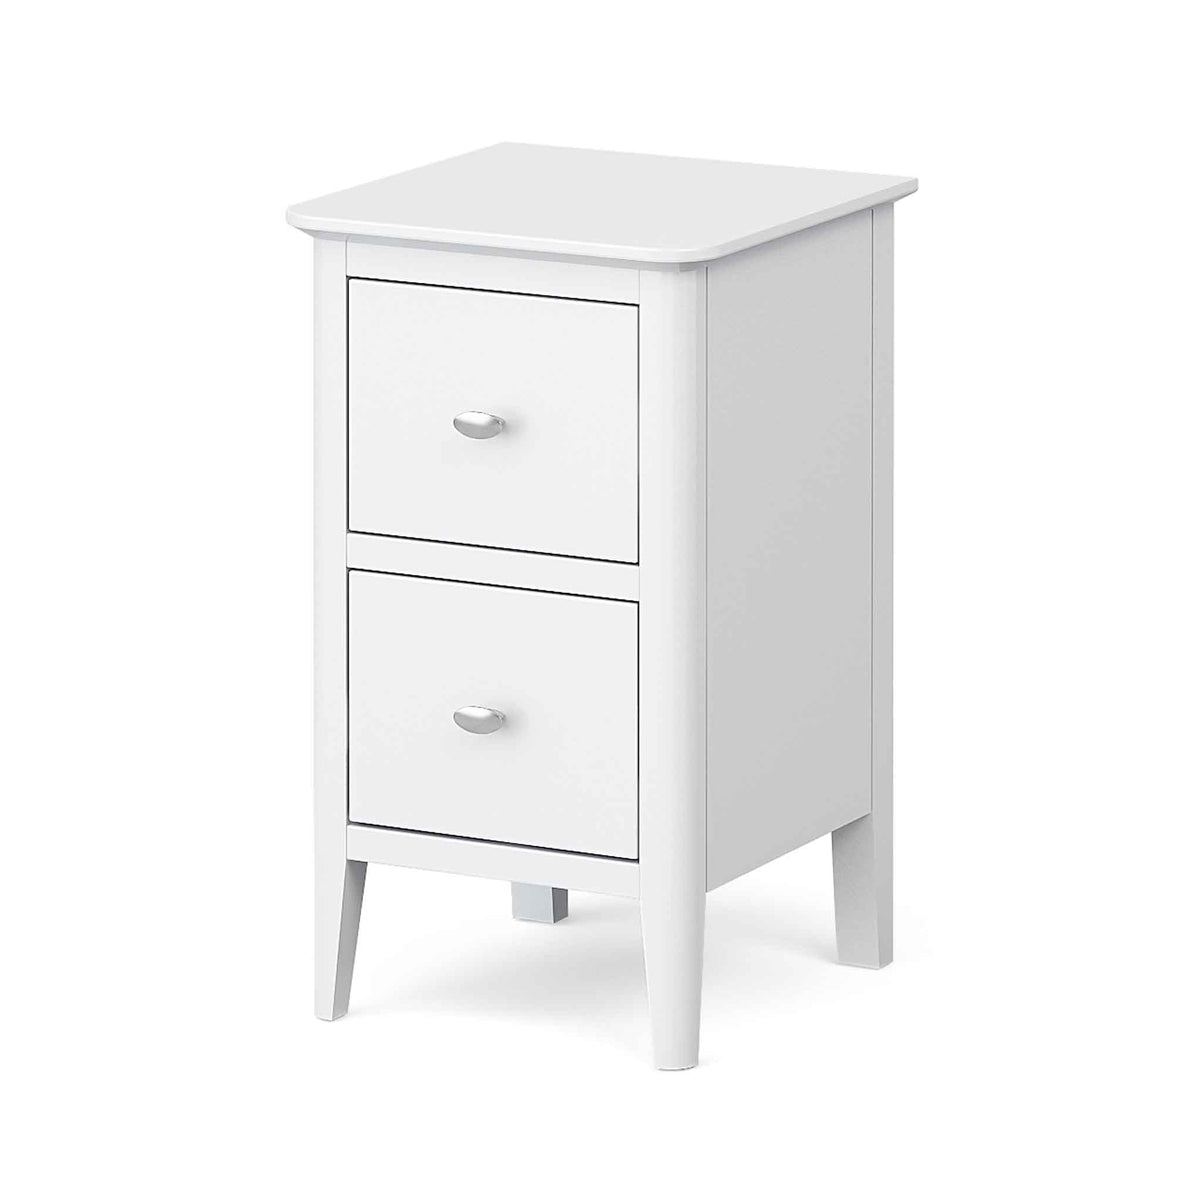 Chester White Narrow Bedside Drawers Table - Side view